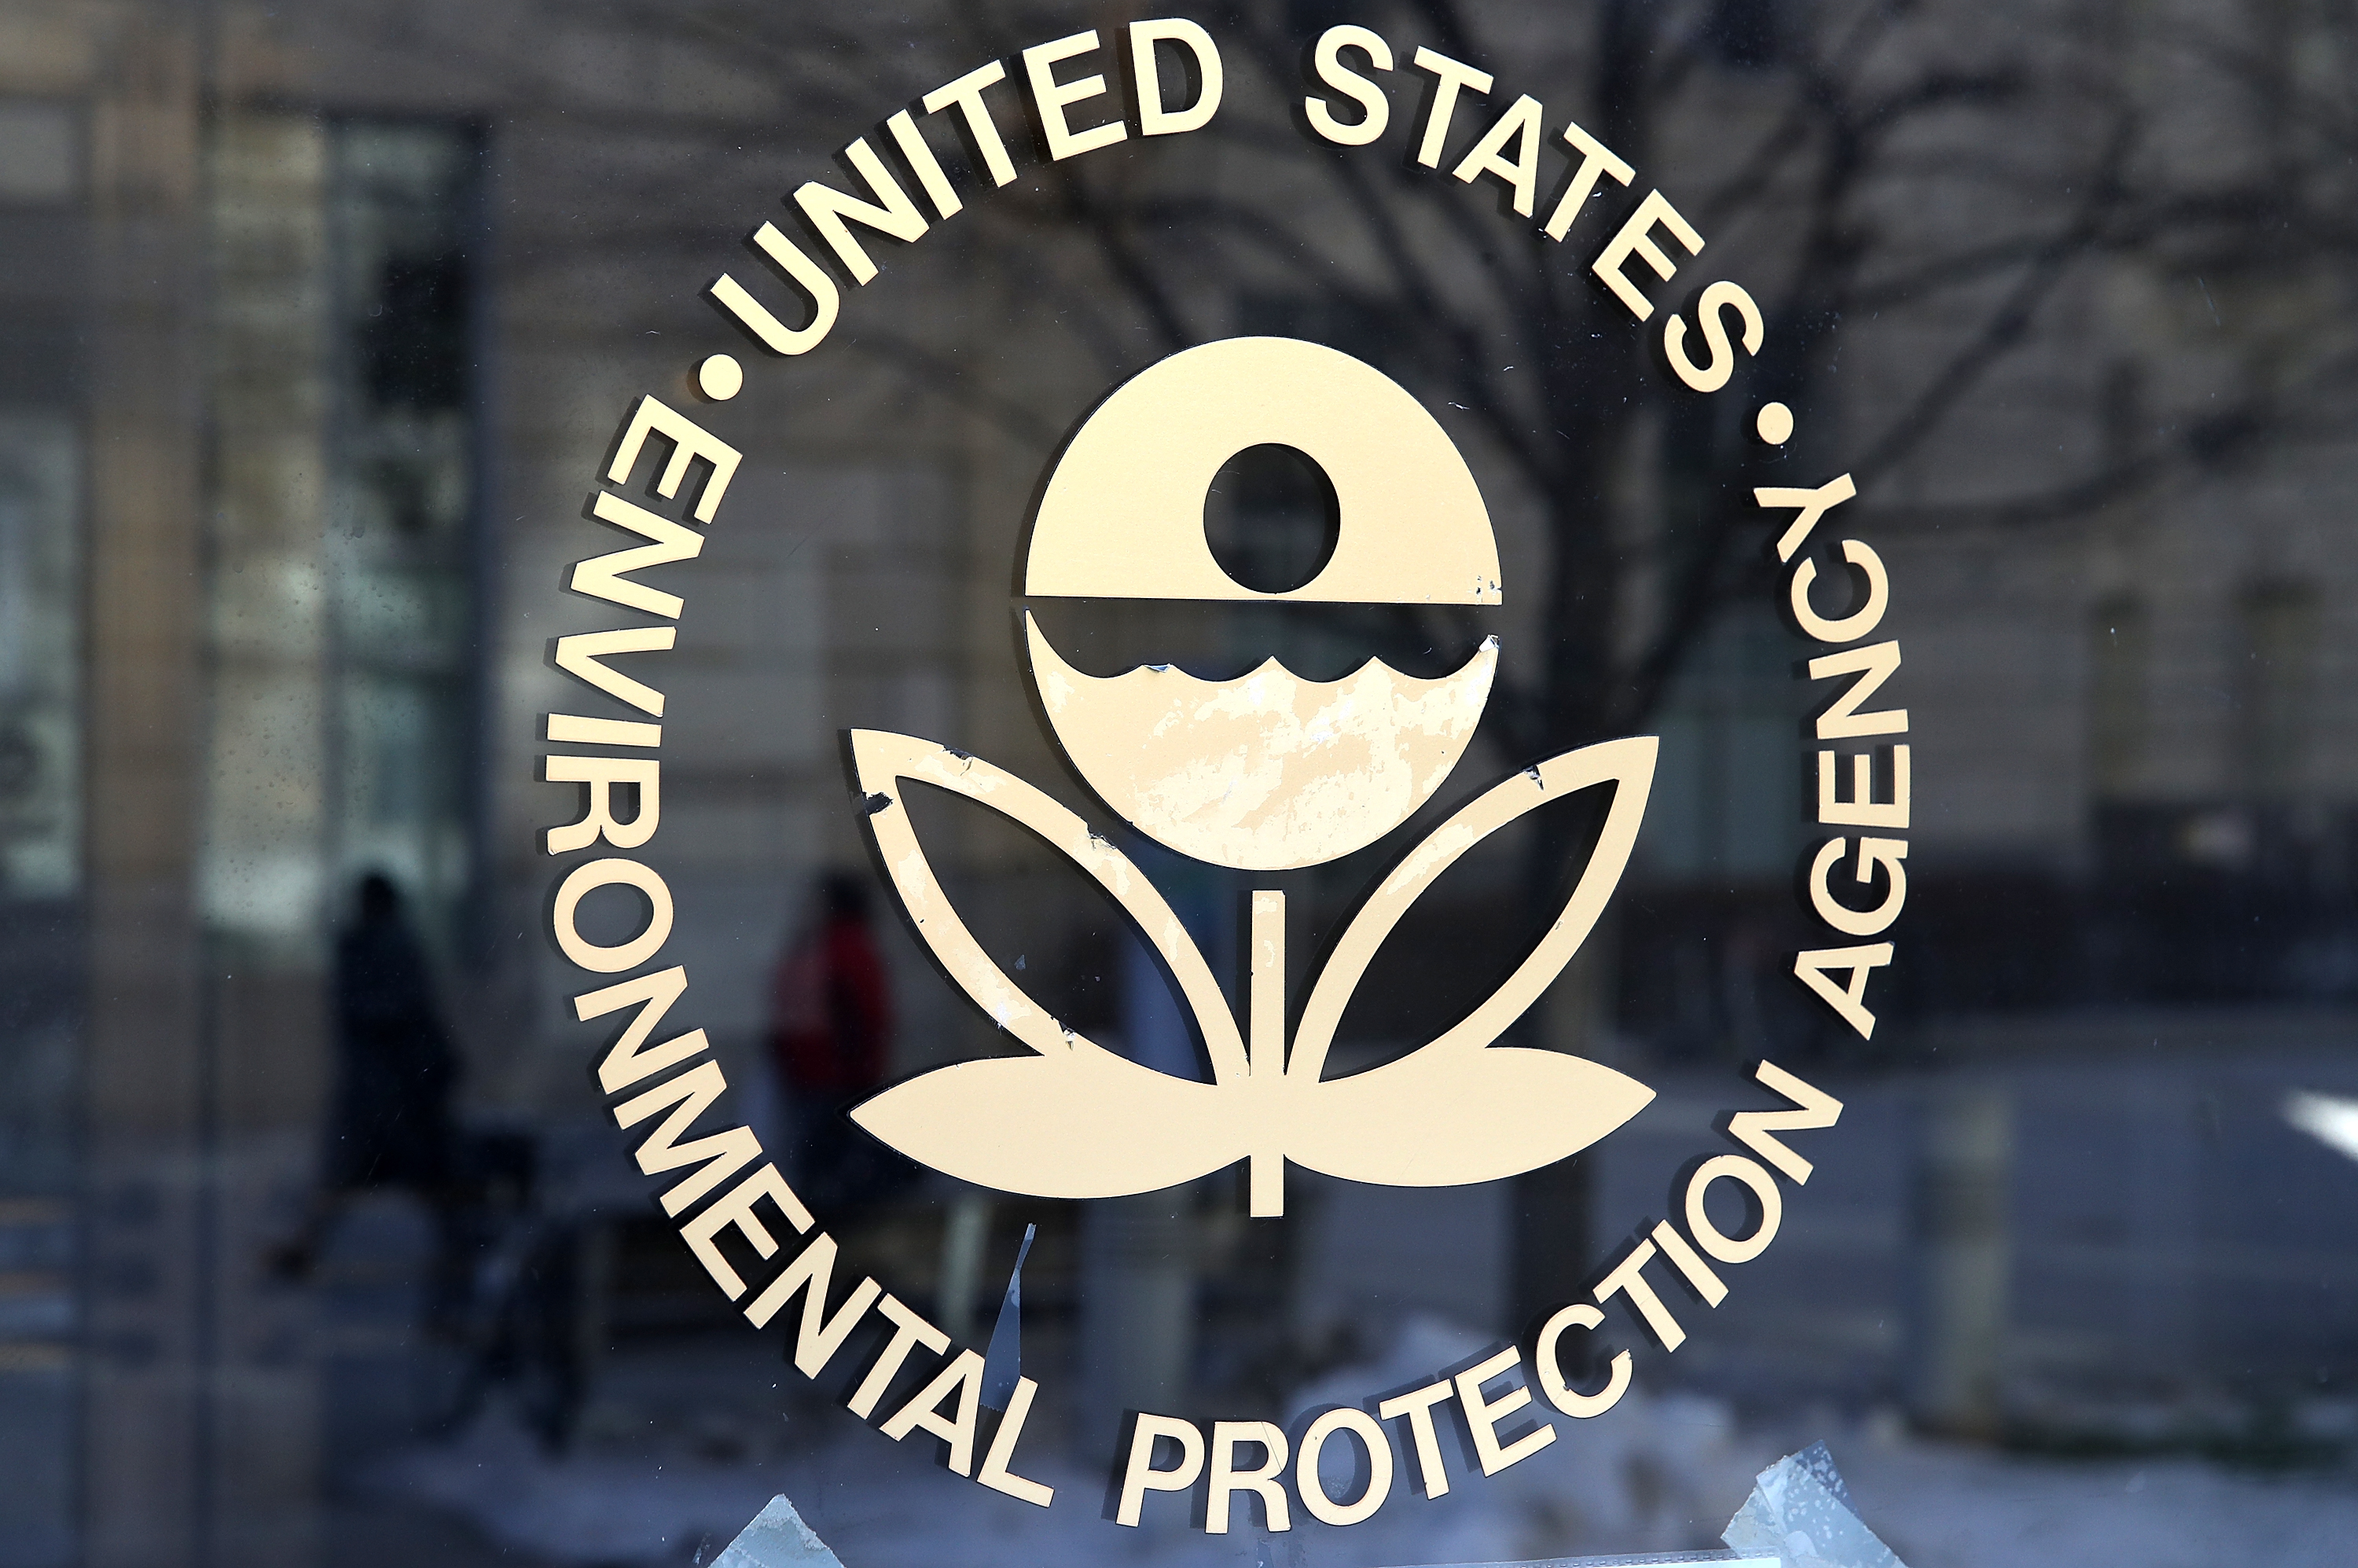 Trump EPA appointee blocked public release of cancer danger, inspector general says